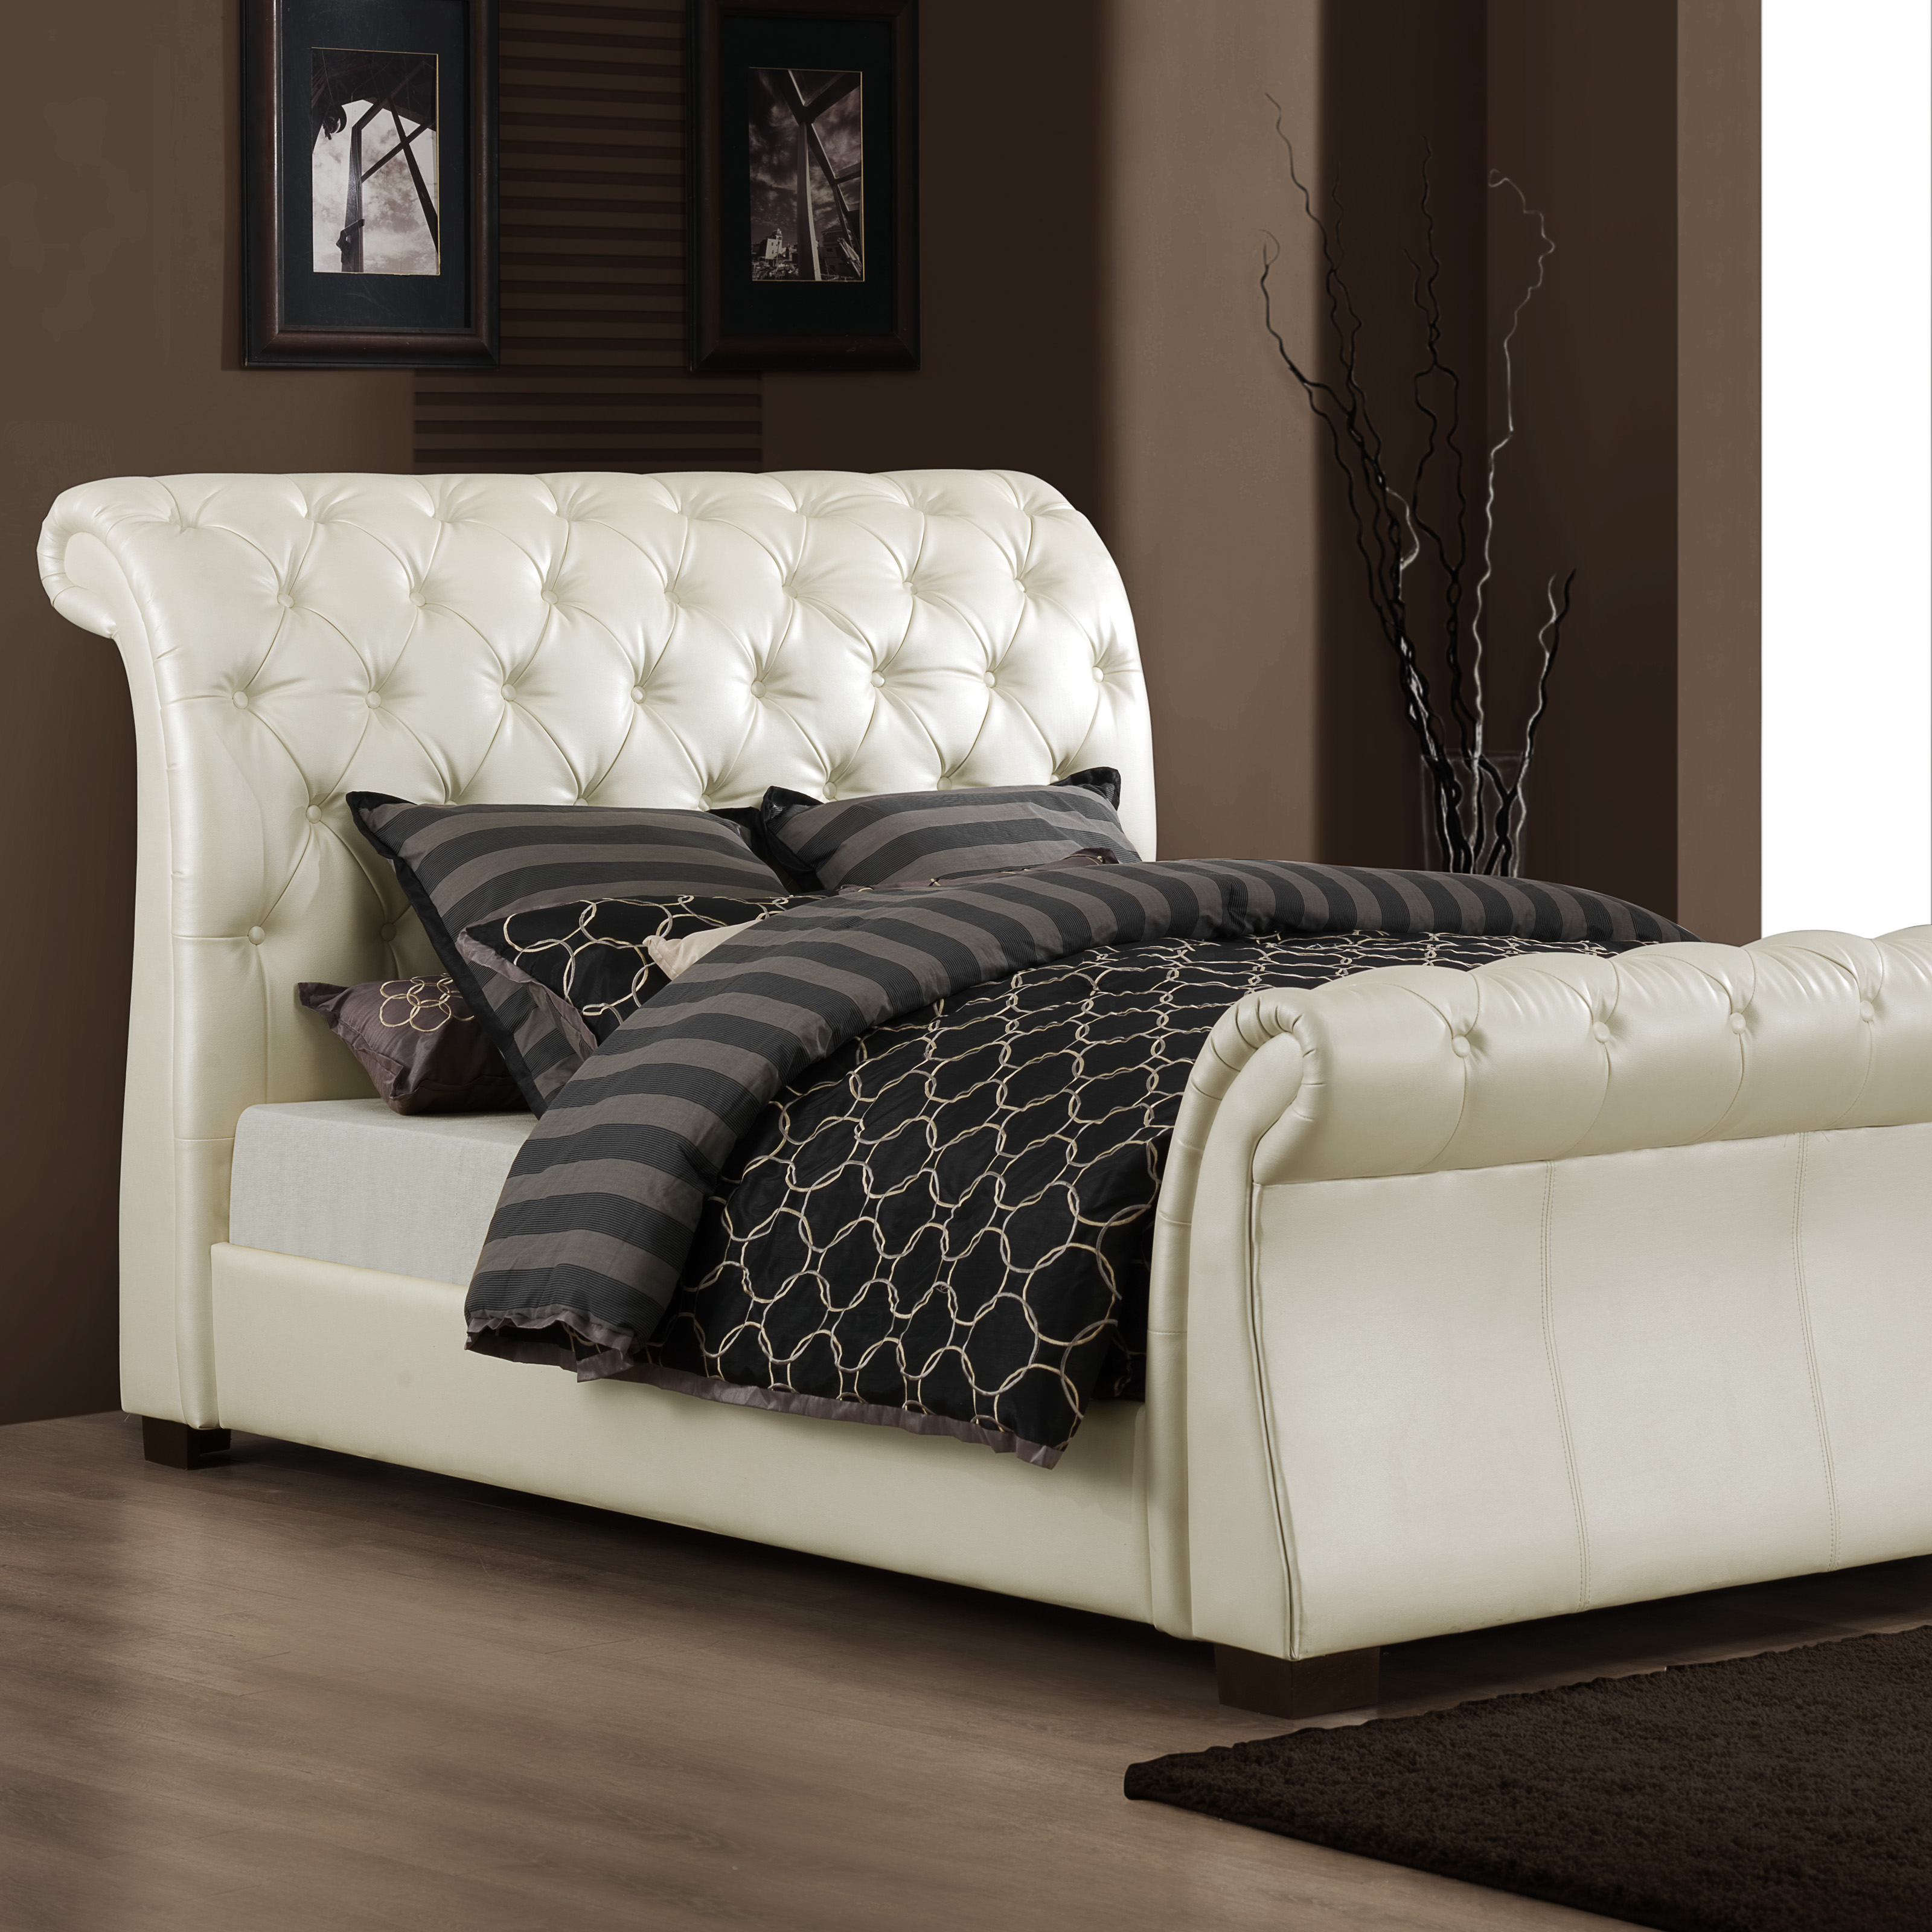 Brentwood Upholstered Sleigh Bed White Vinyl At Hayneedle